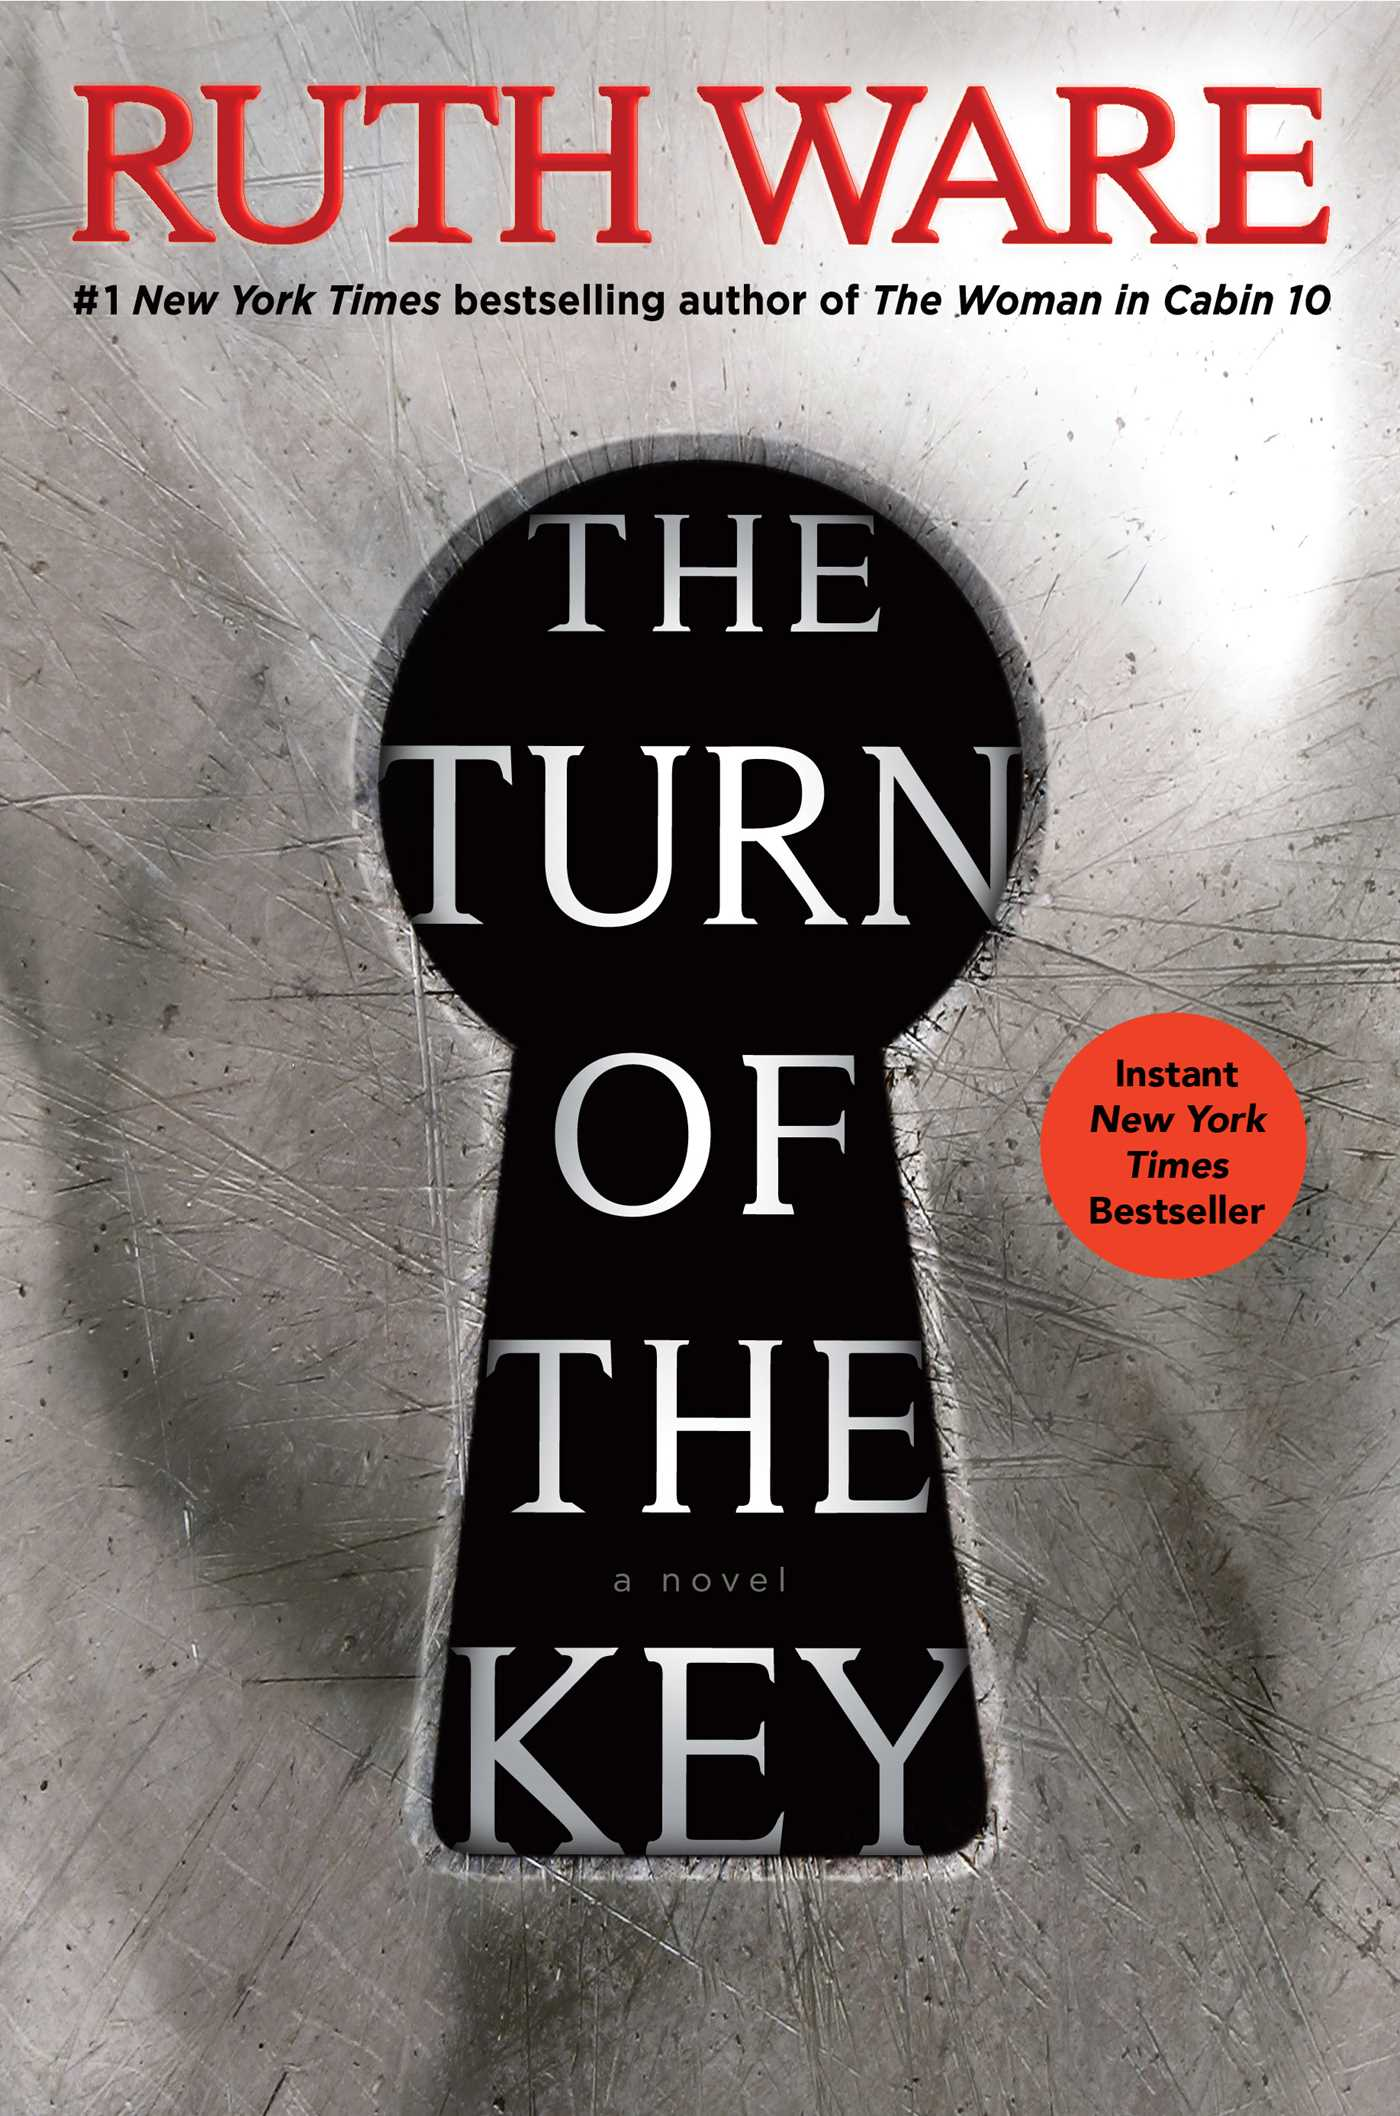 The Turn of the Key, by Ruth Ware